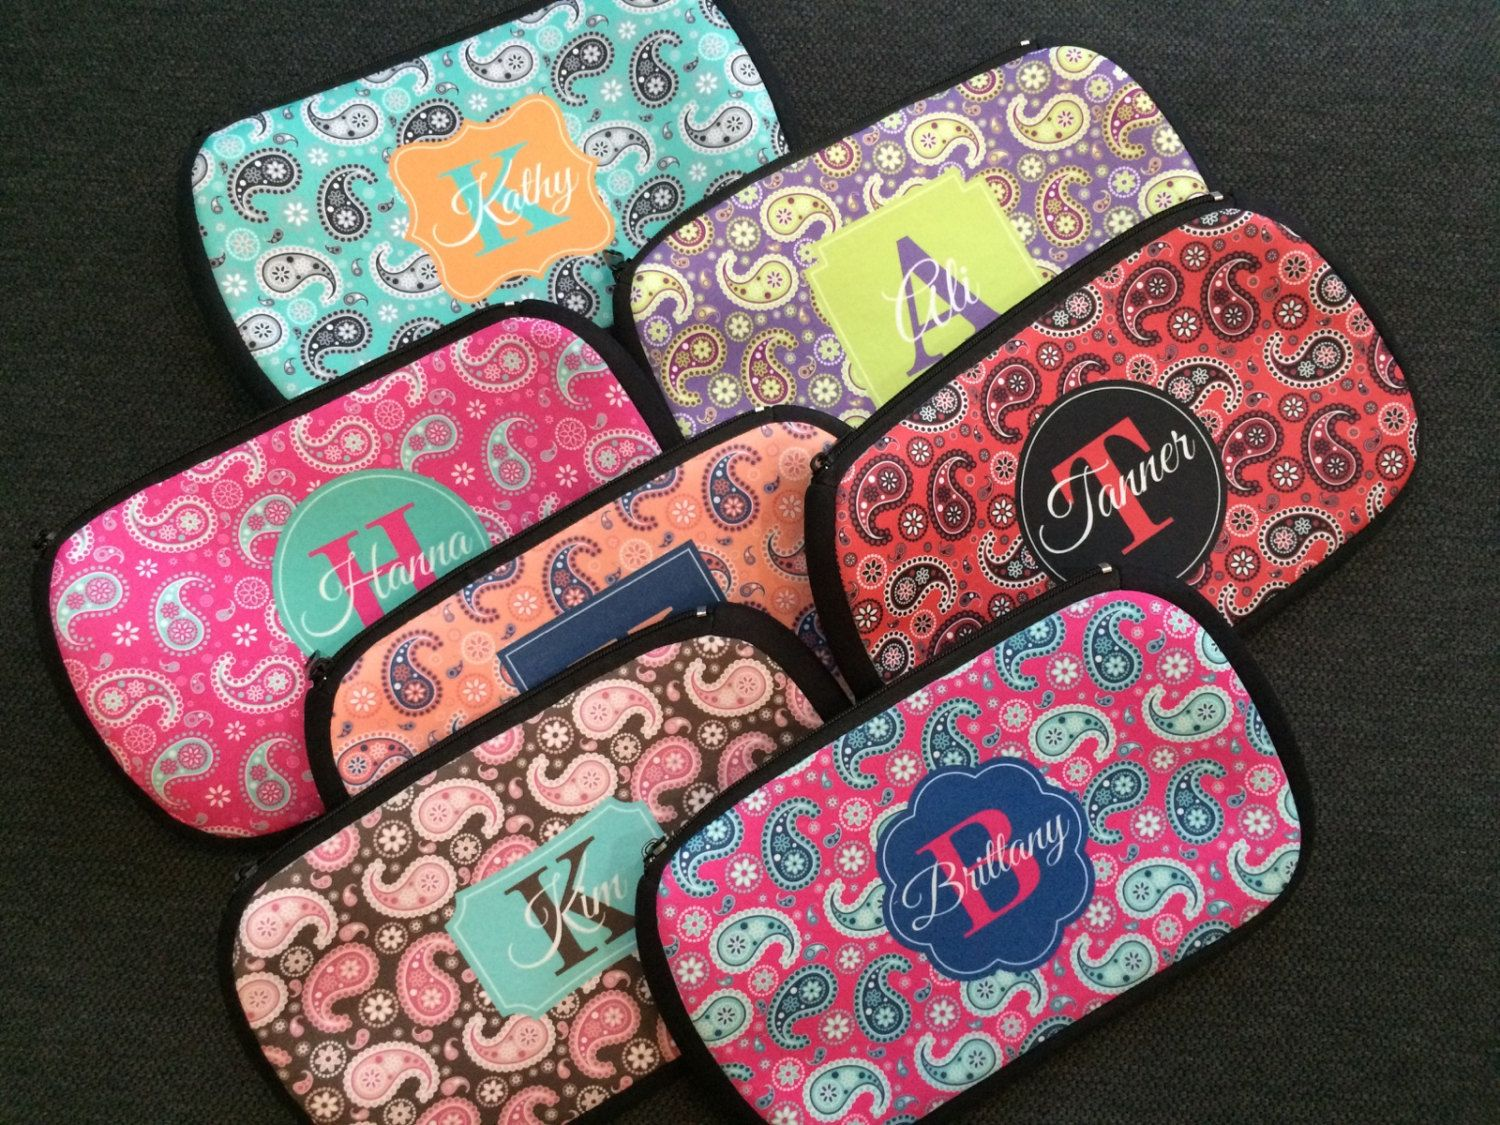 Pin by Michelle Fegley on DIY Etsy, Monogram styles